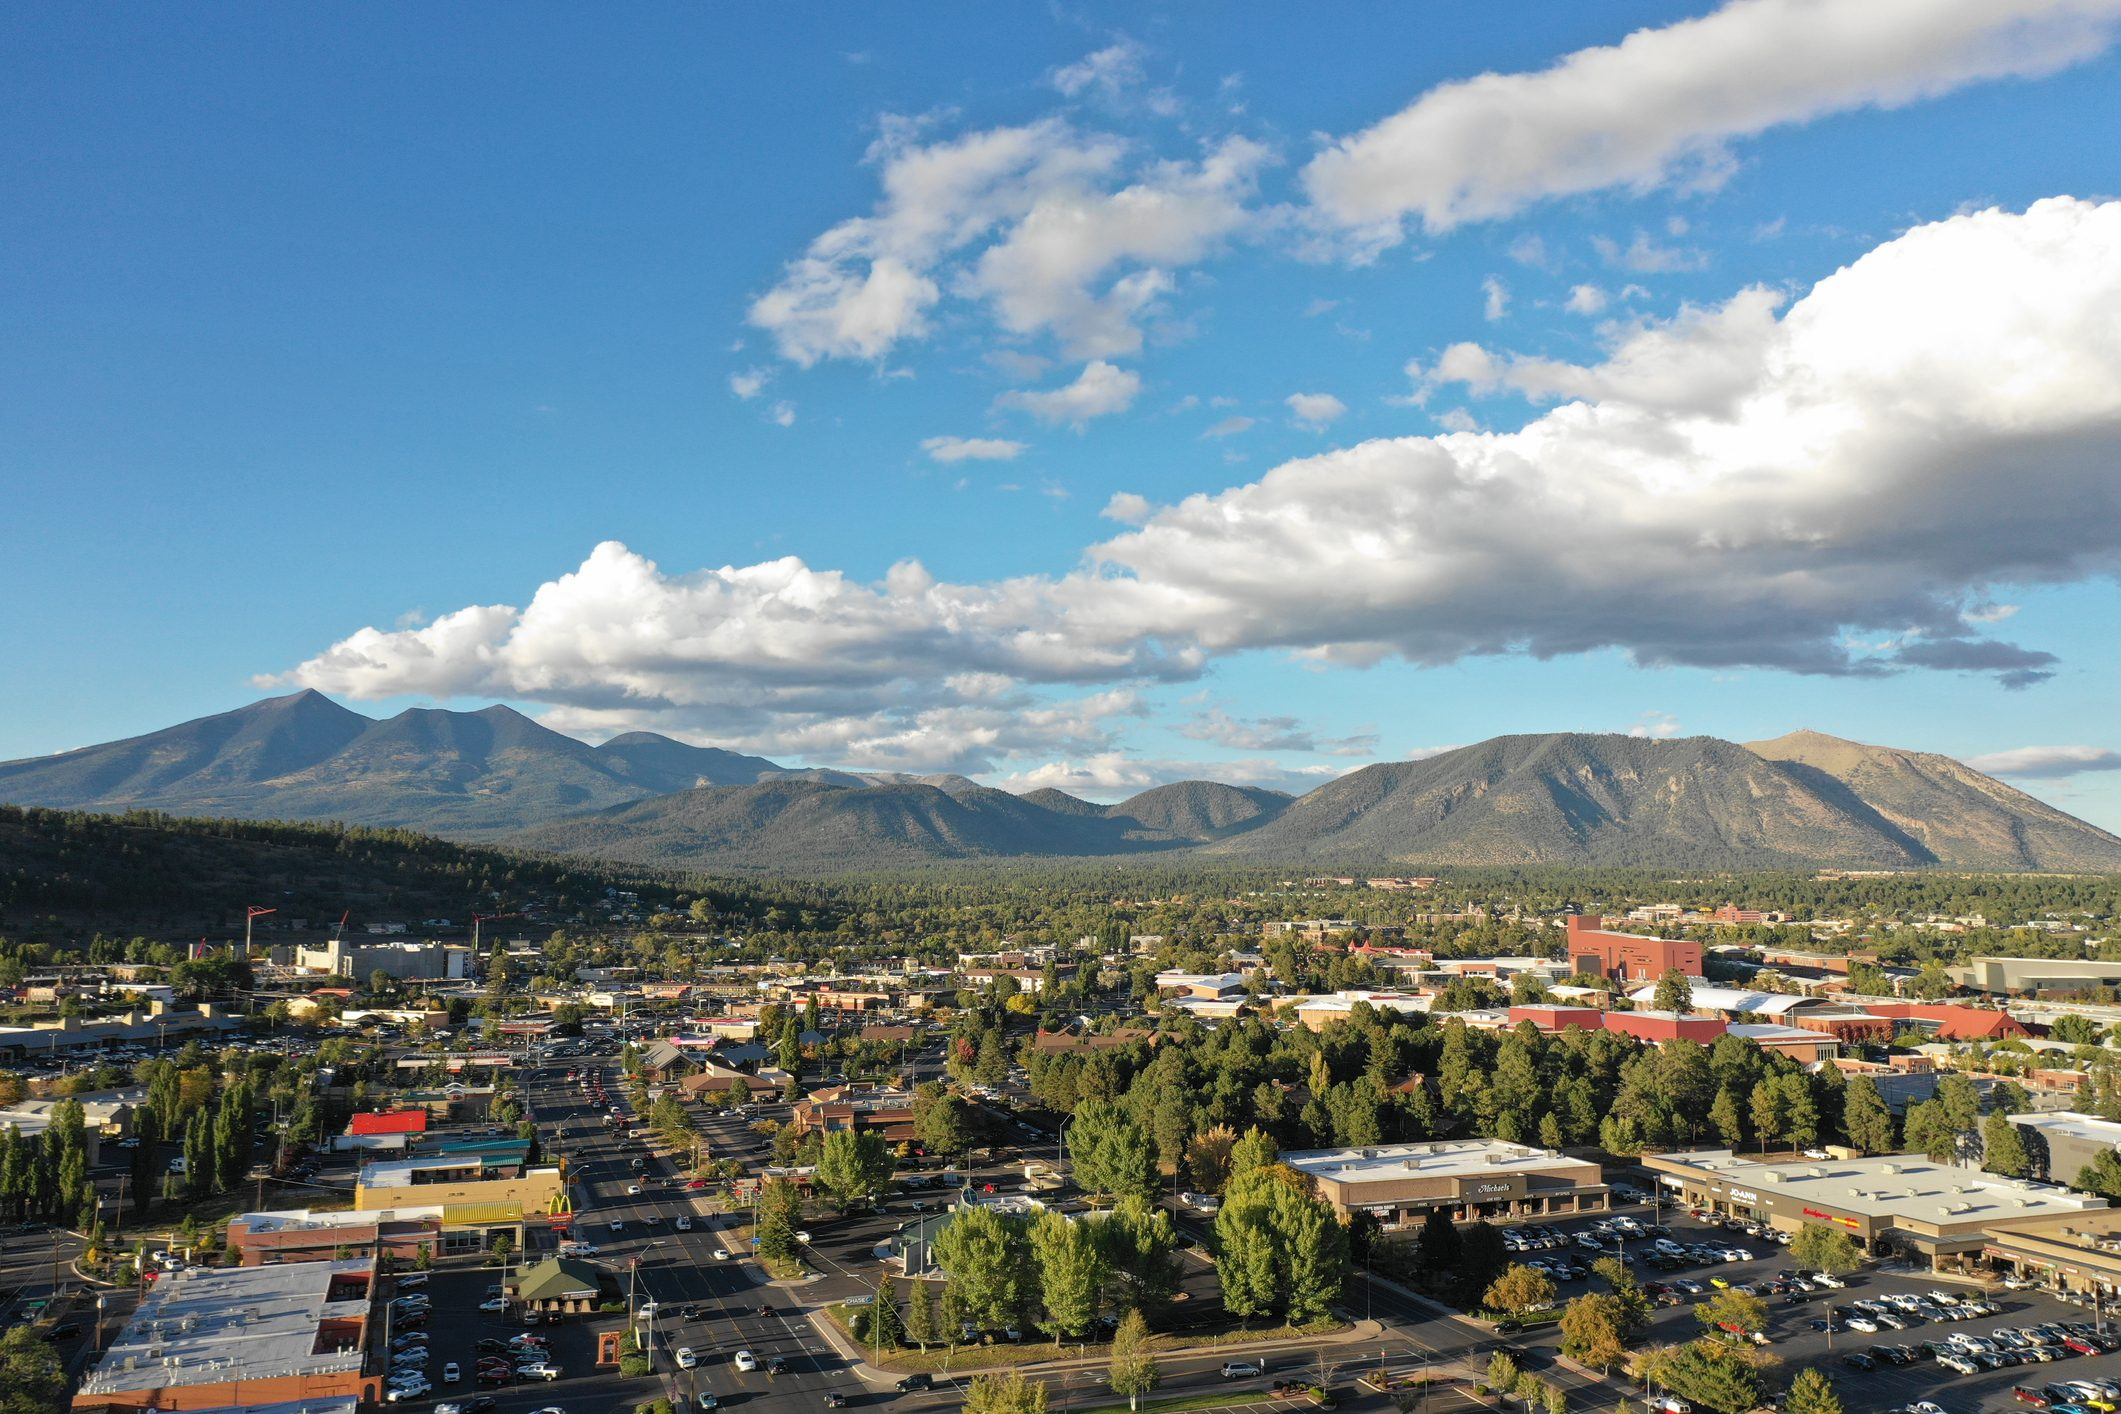 The beauty of Flagstaff Mountain in summer